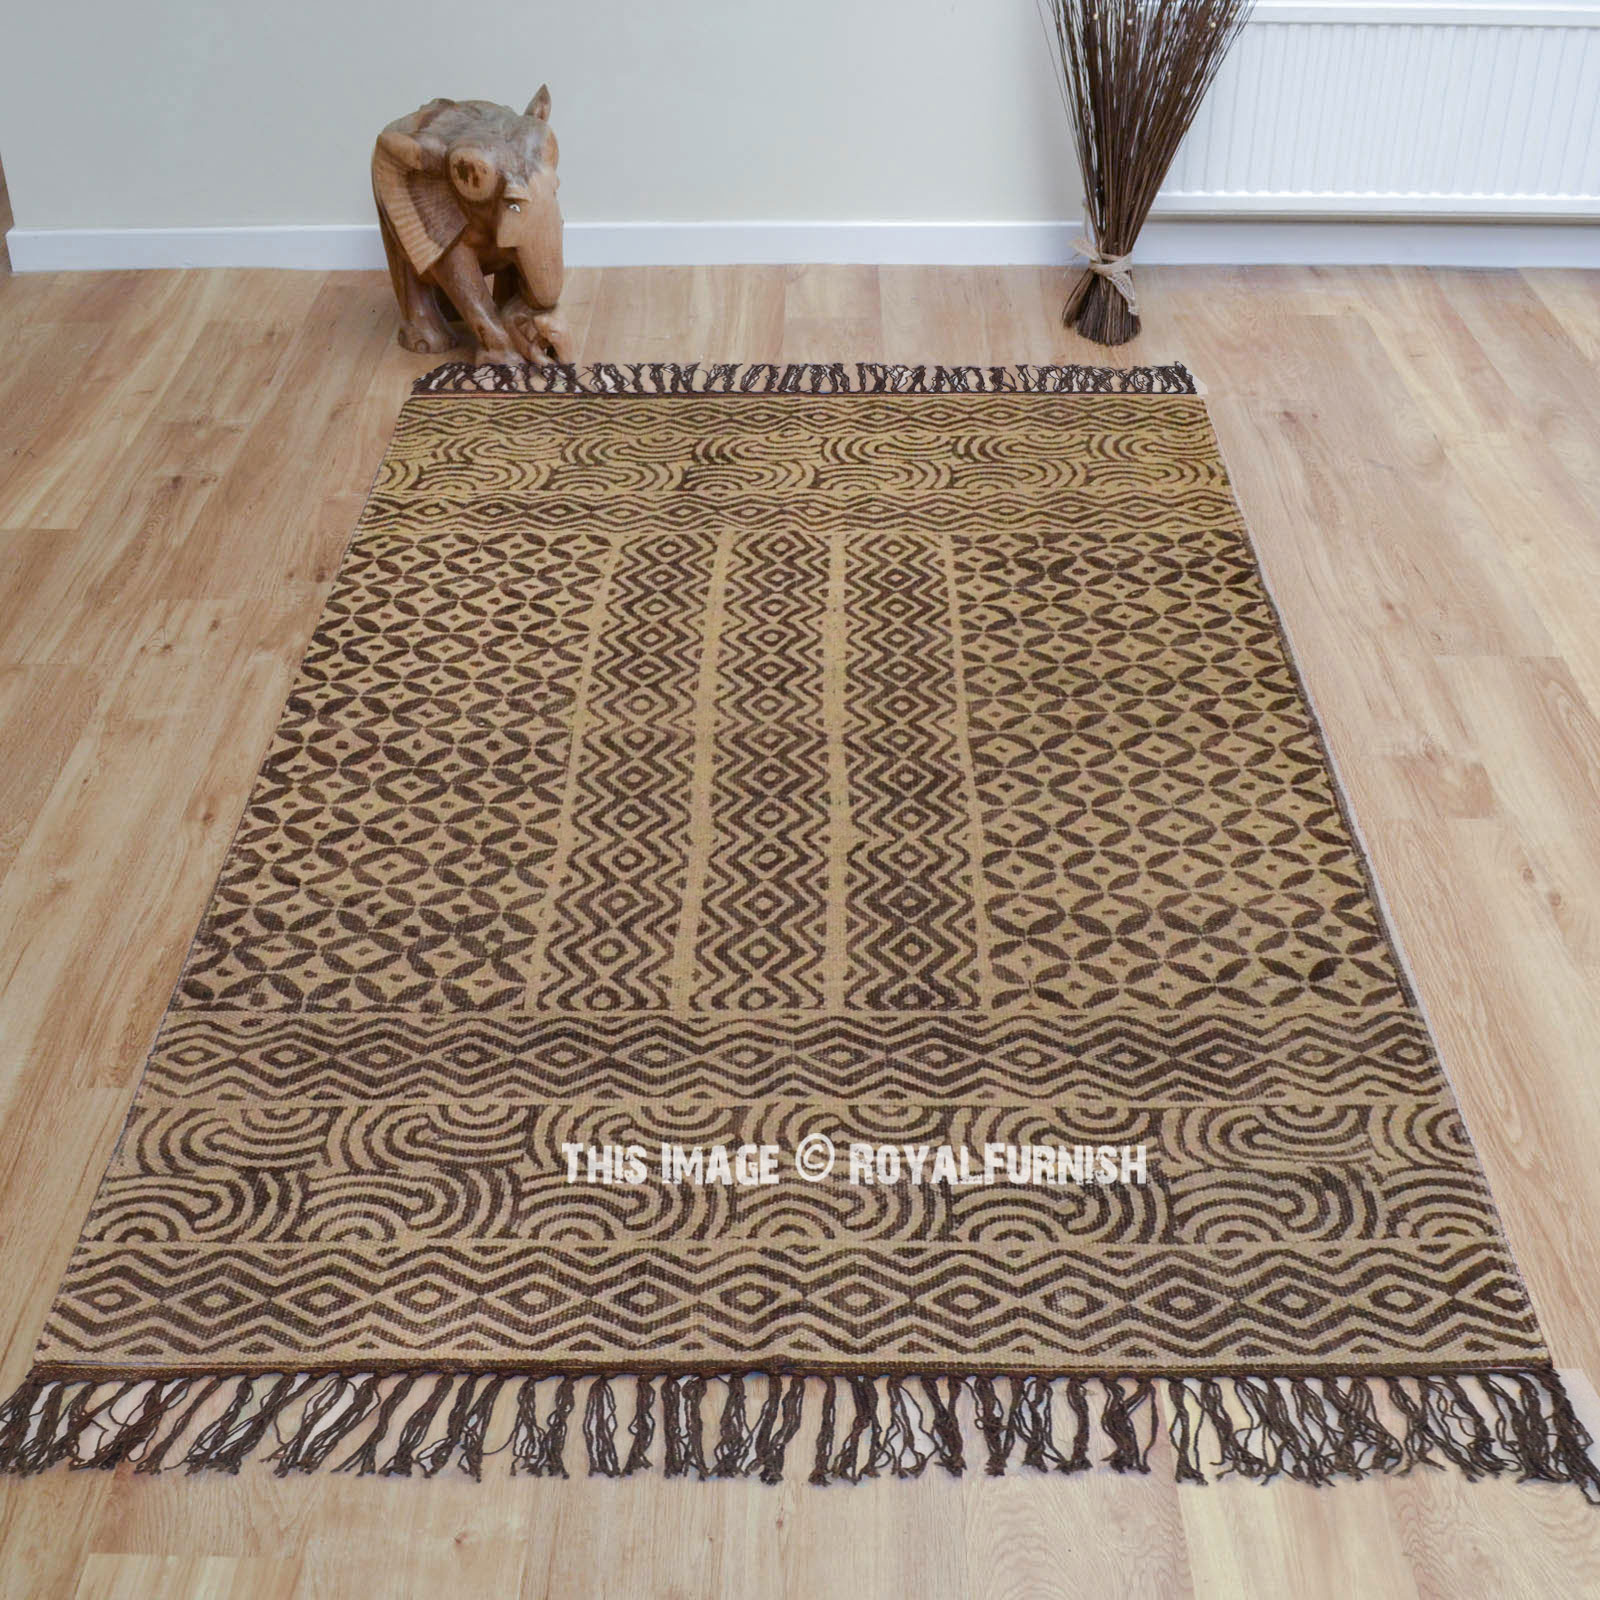 Brown Mix Flower Printed Cotton Area Rug Carpet 3x5 Ft